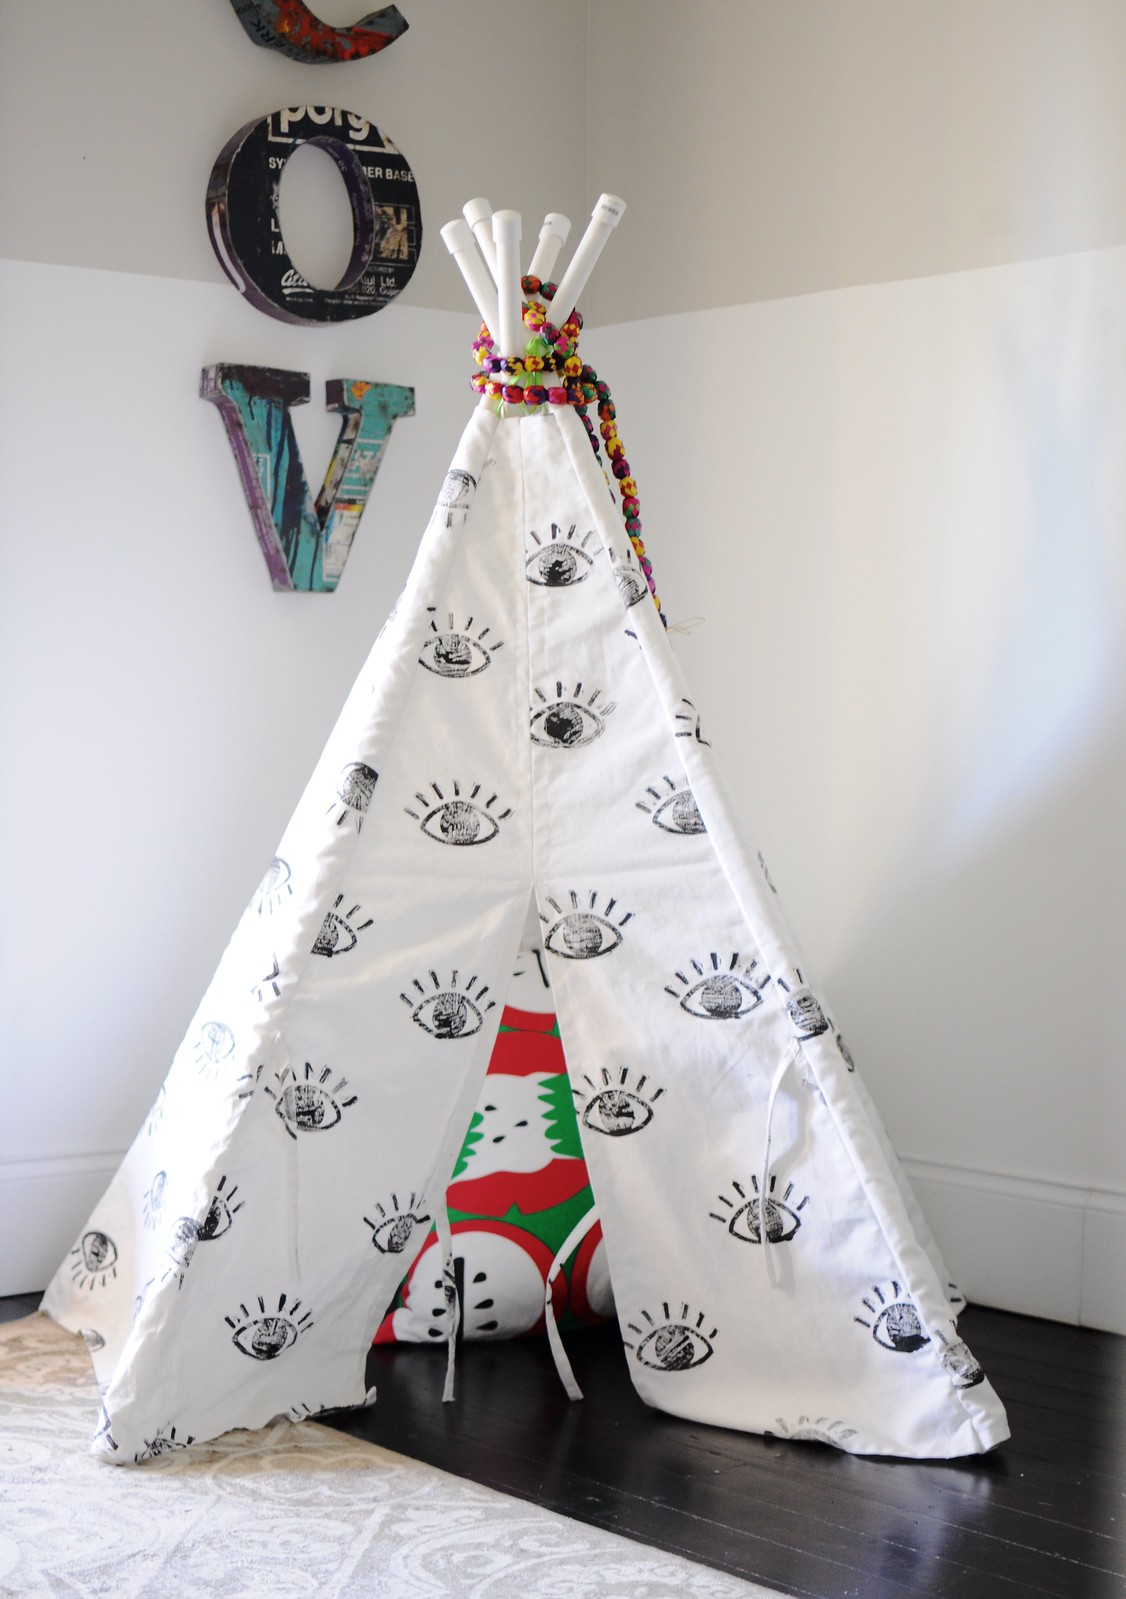 Using the Sew Baby Teepee Pattern: Tips and Tricks